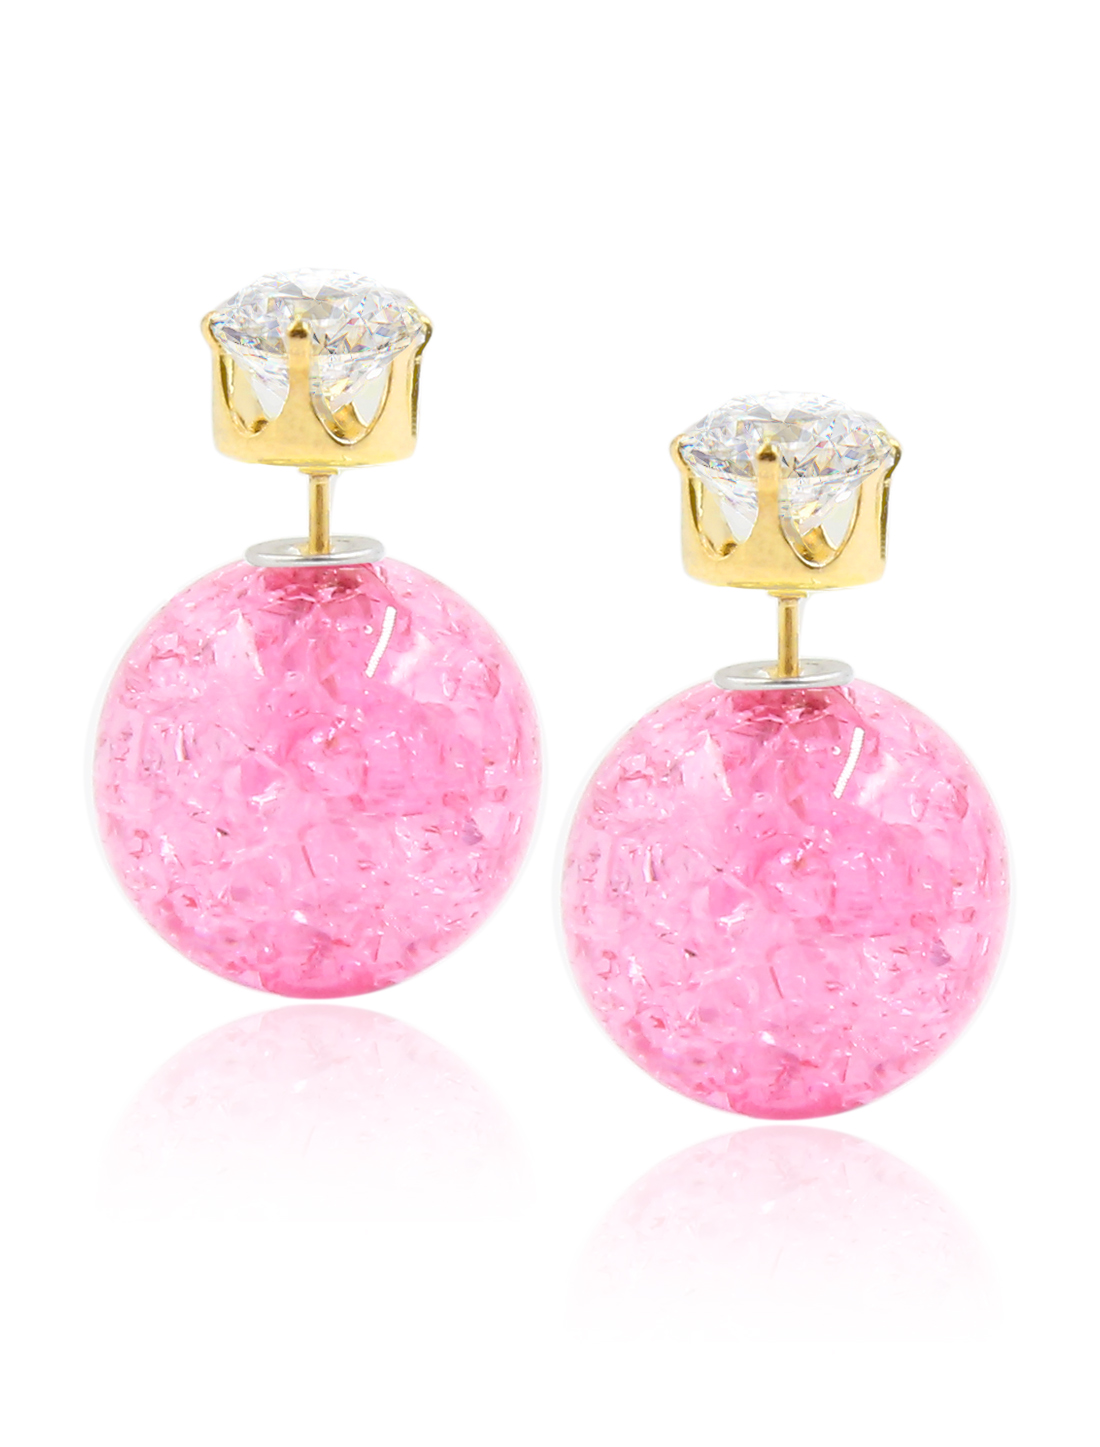 Fashion Women Elegant Double Sides Zircon Faux Crystal Ball Earrings Ear Stud 1 Pair Pink